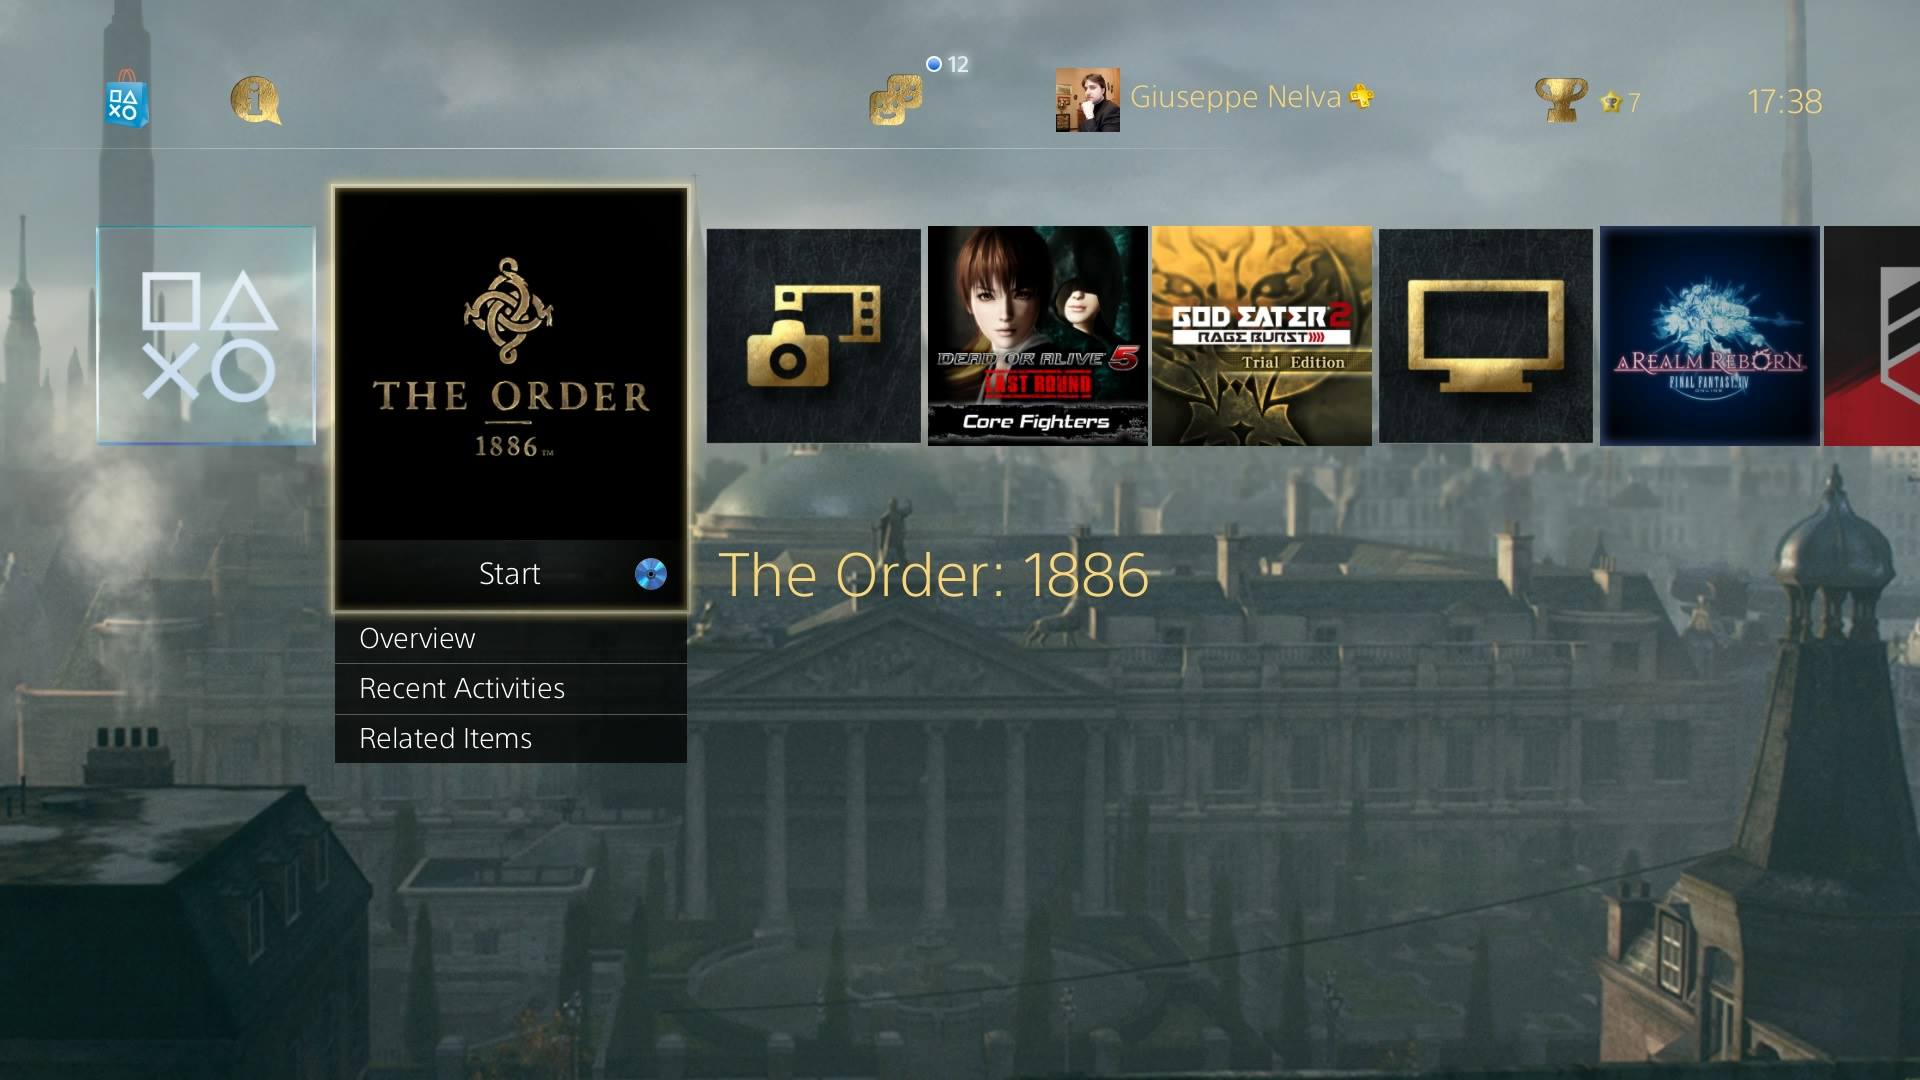 Ps3 Animated Wallpaper The Order 1886 Free Ps4 Dynamic Theme From Promo Website